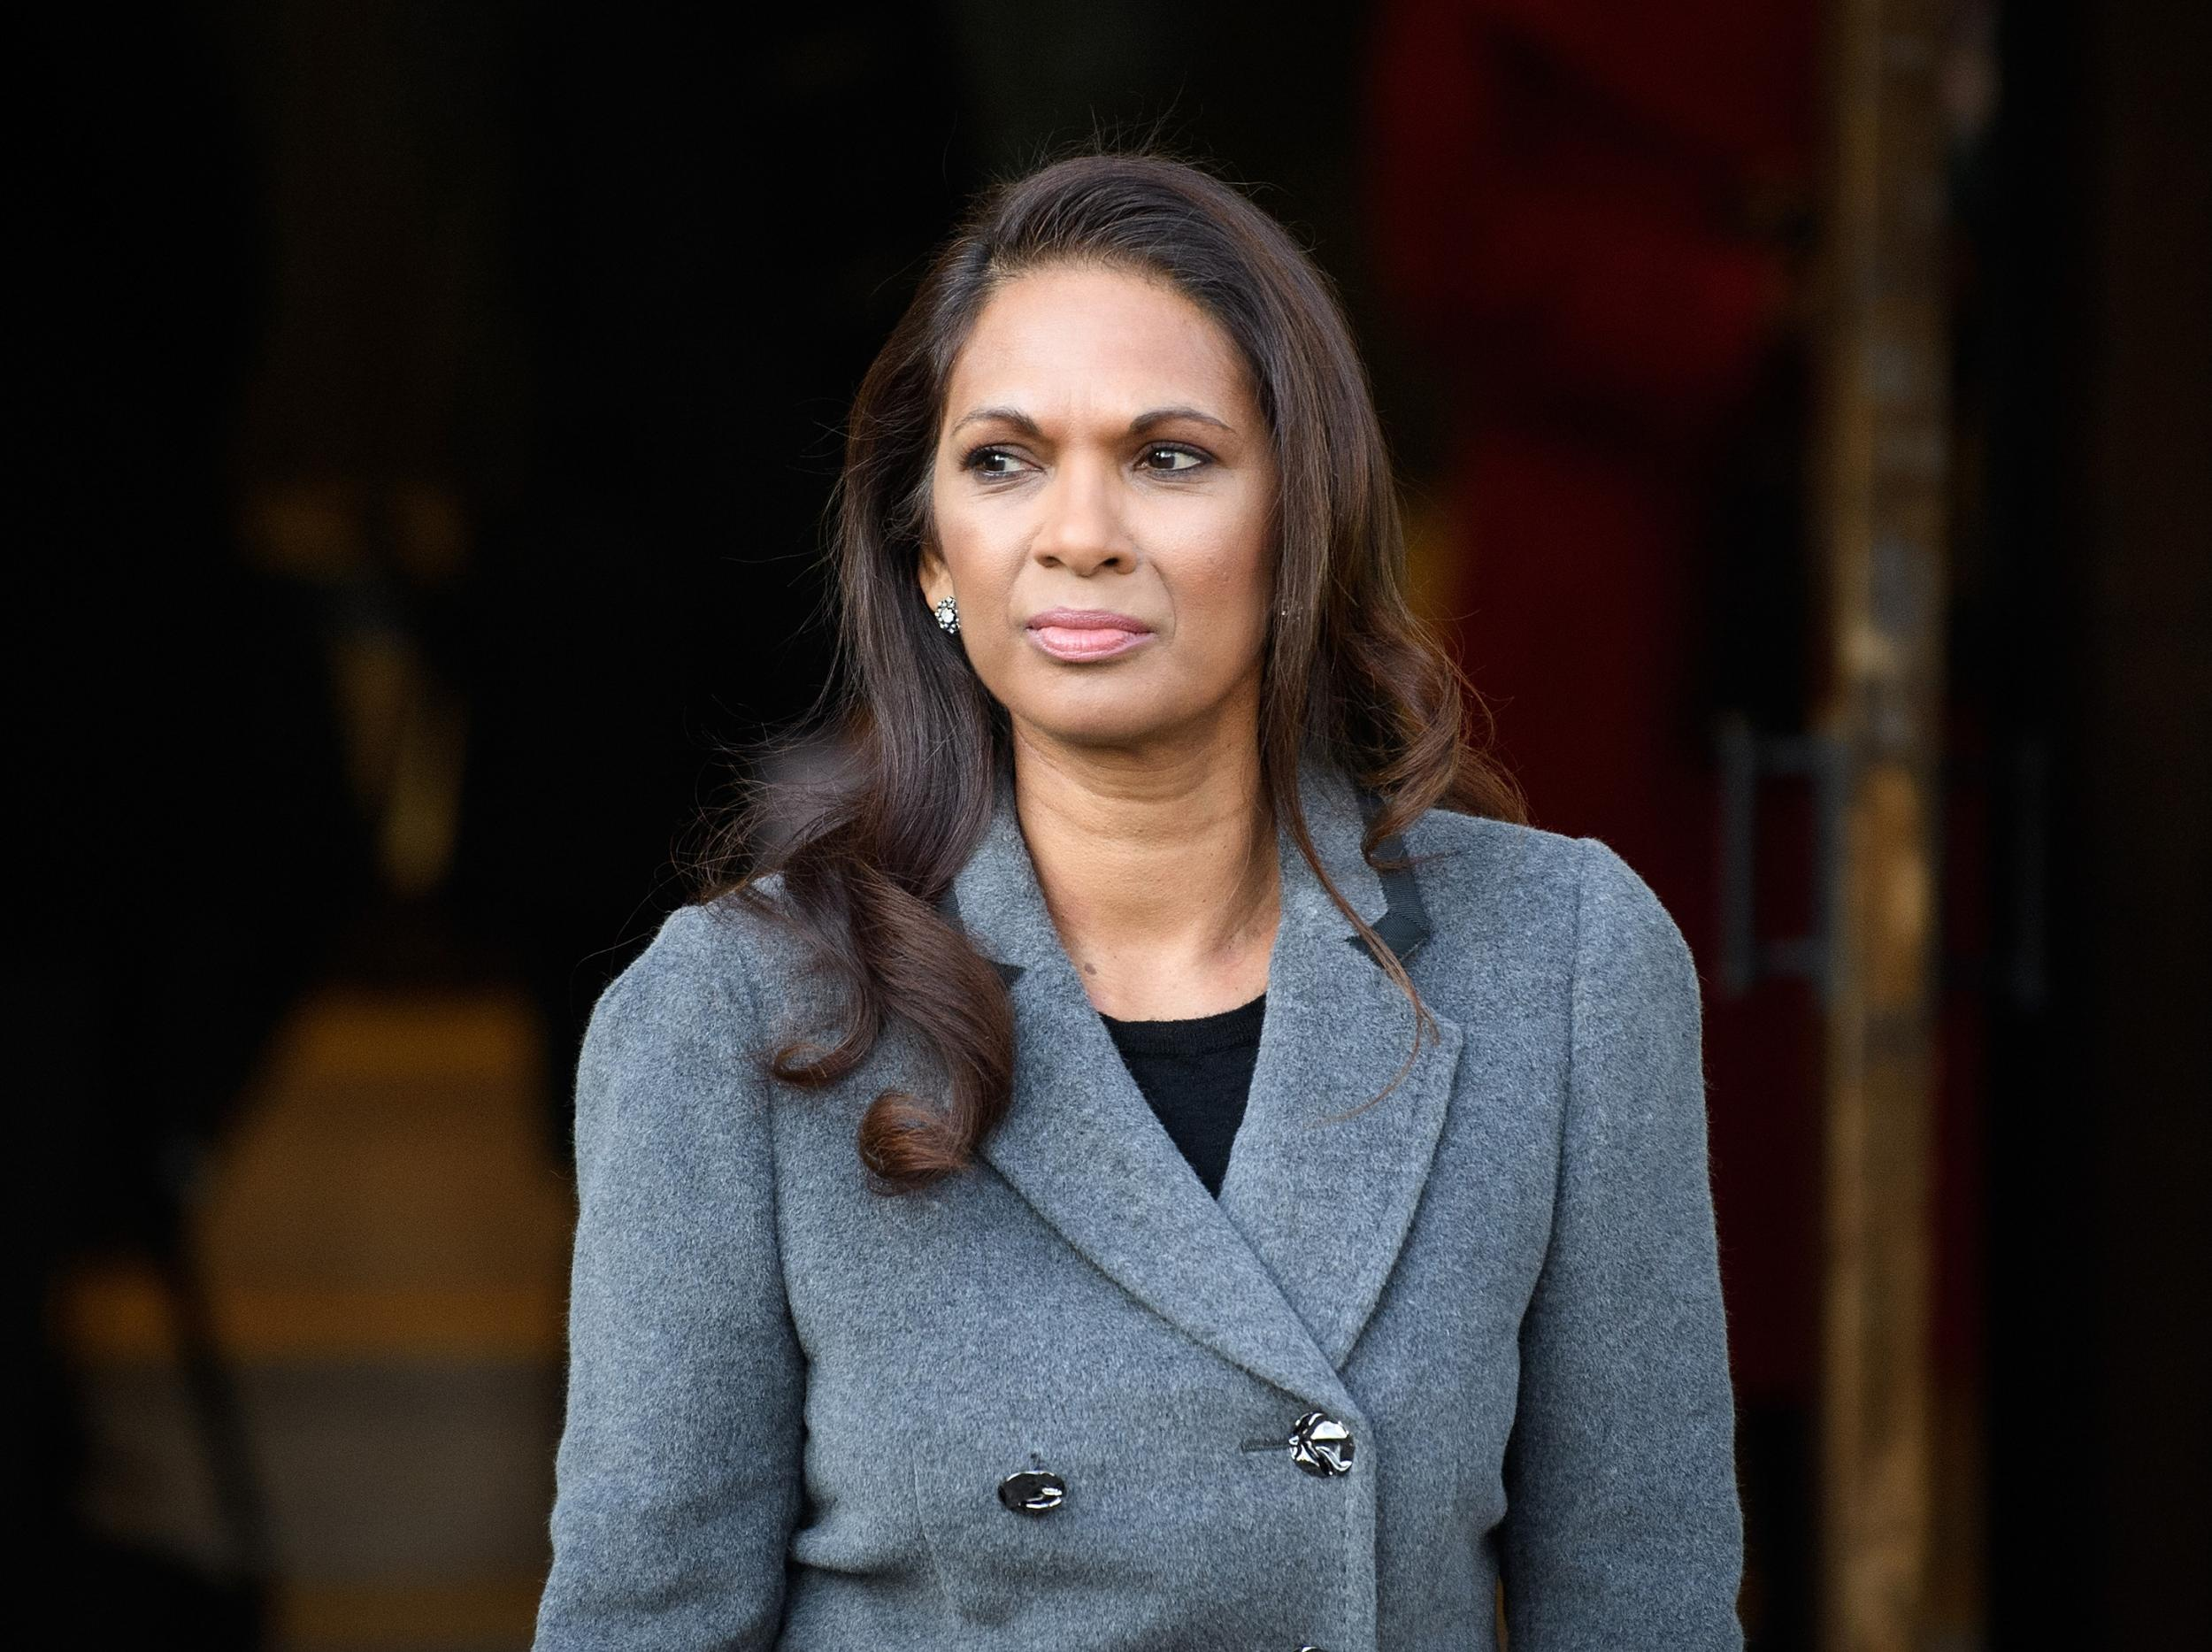 Cartmel Racecourse apologises for tweet calling anti-Brexit campaigner Gina Miller a 'b****'